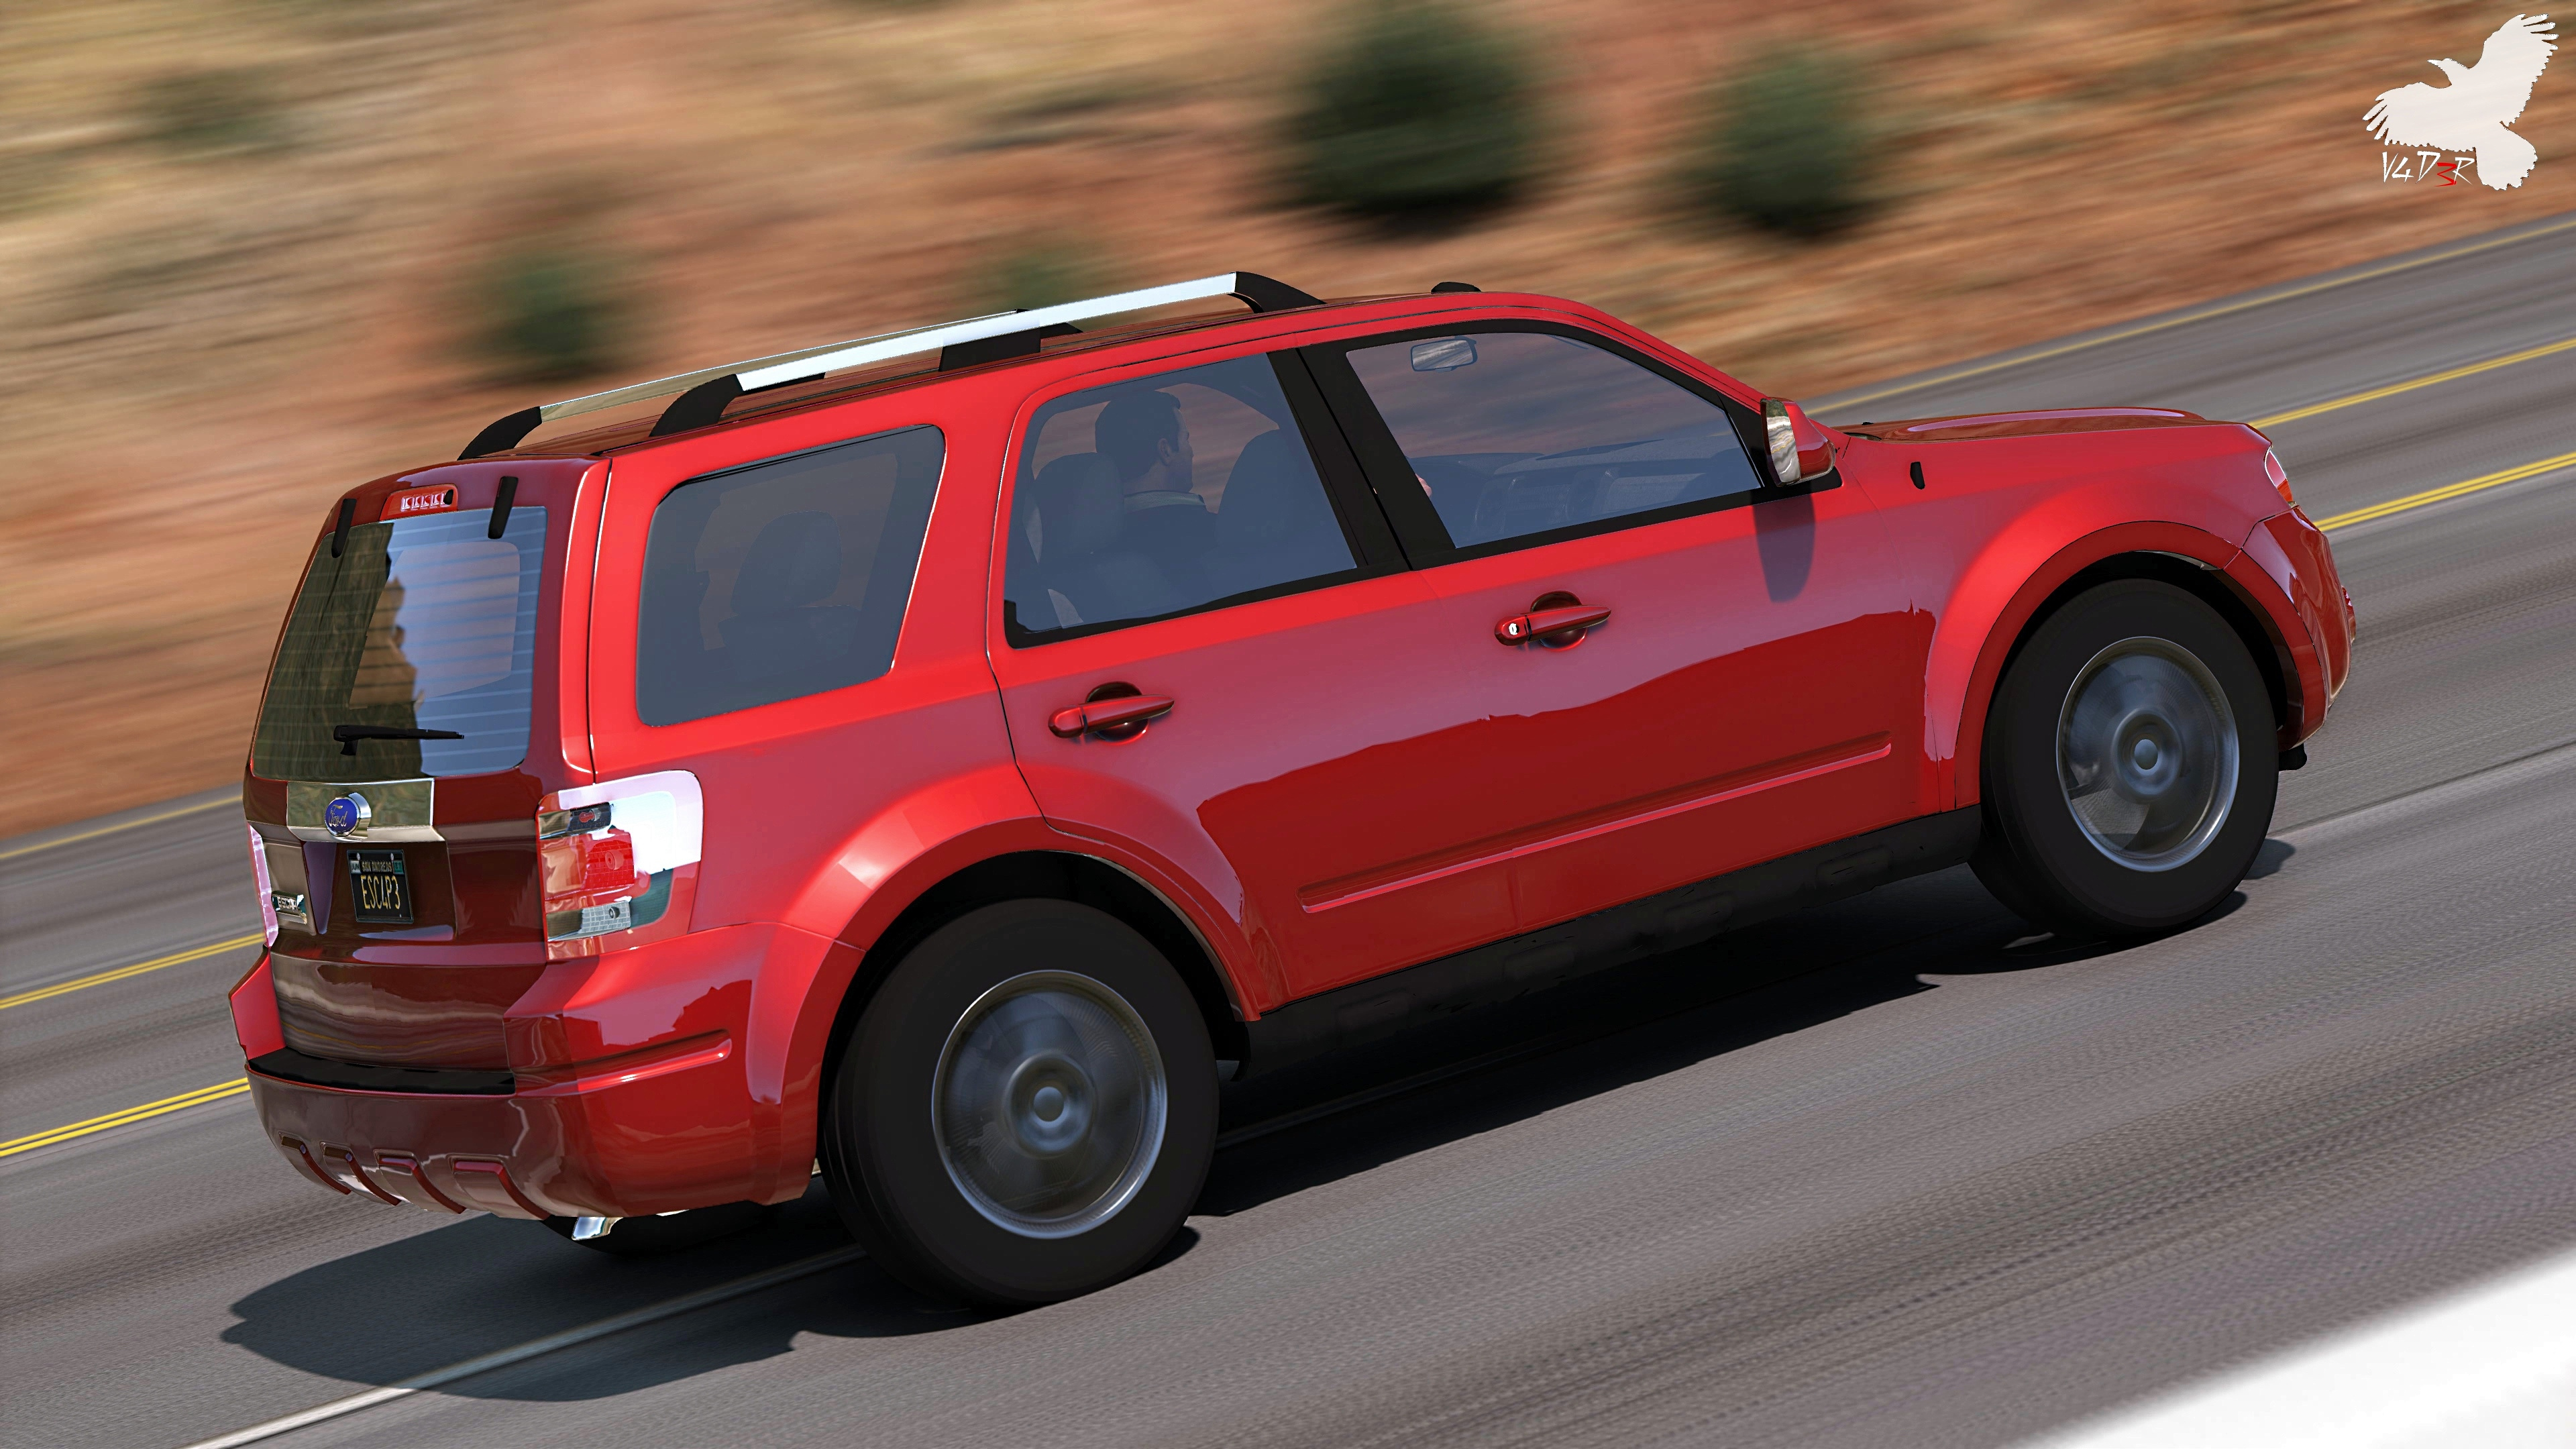 Ford Escape 2012[Add-on/Replace] [Tuning|Wipers] HQ - GTA5 ...